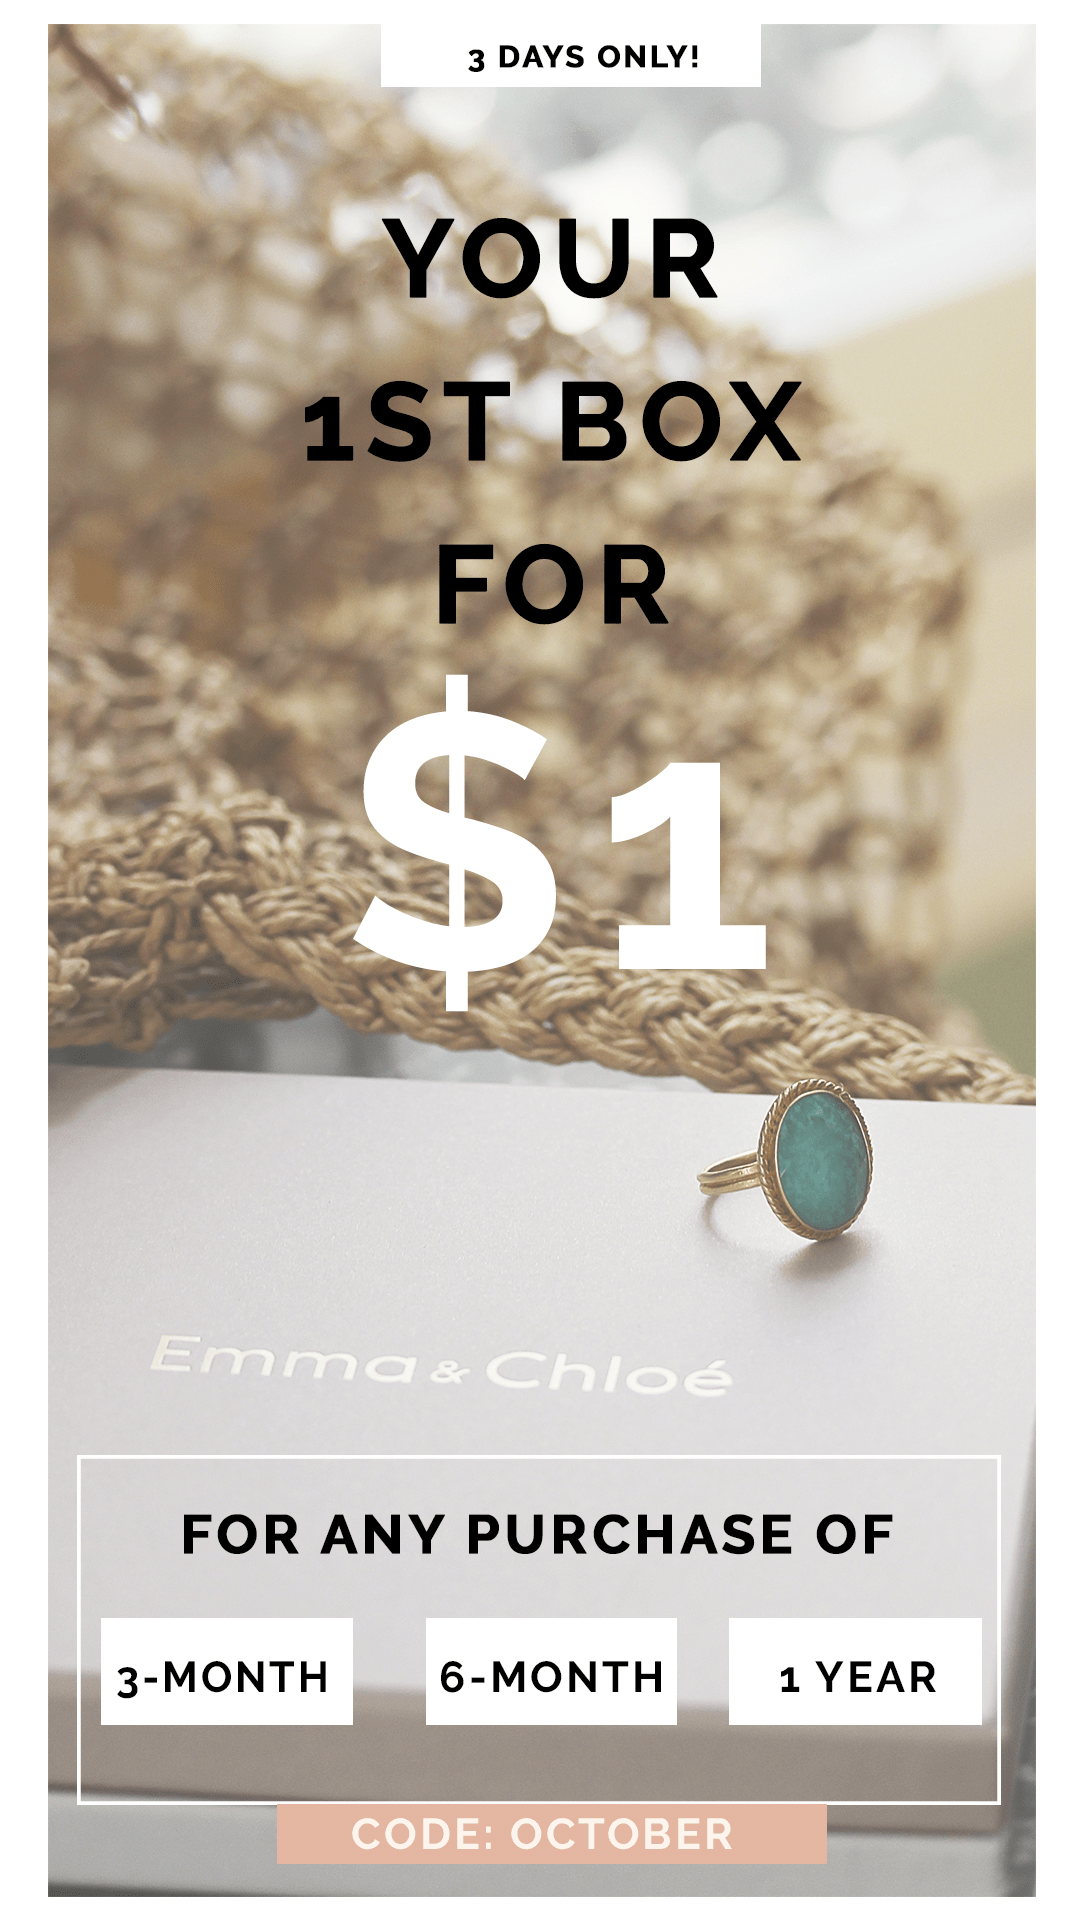 Emma & Chloe Coupon: First Month $1 with 3-Month Subscription!